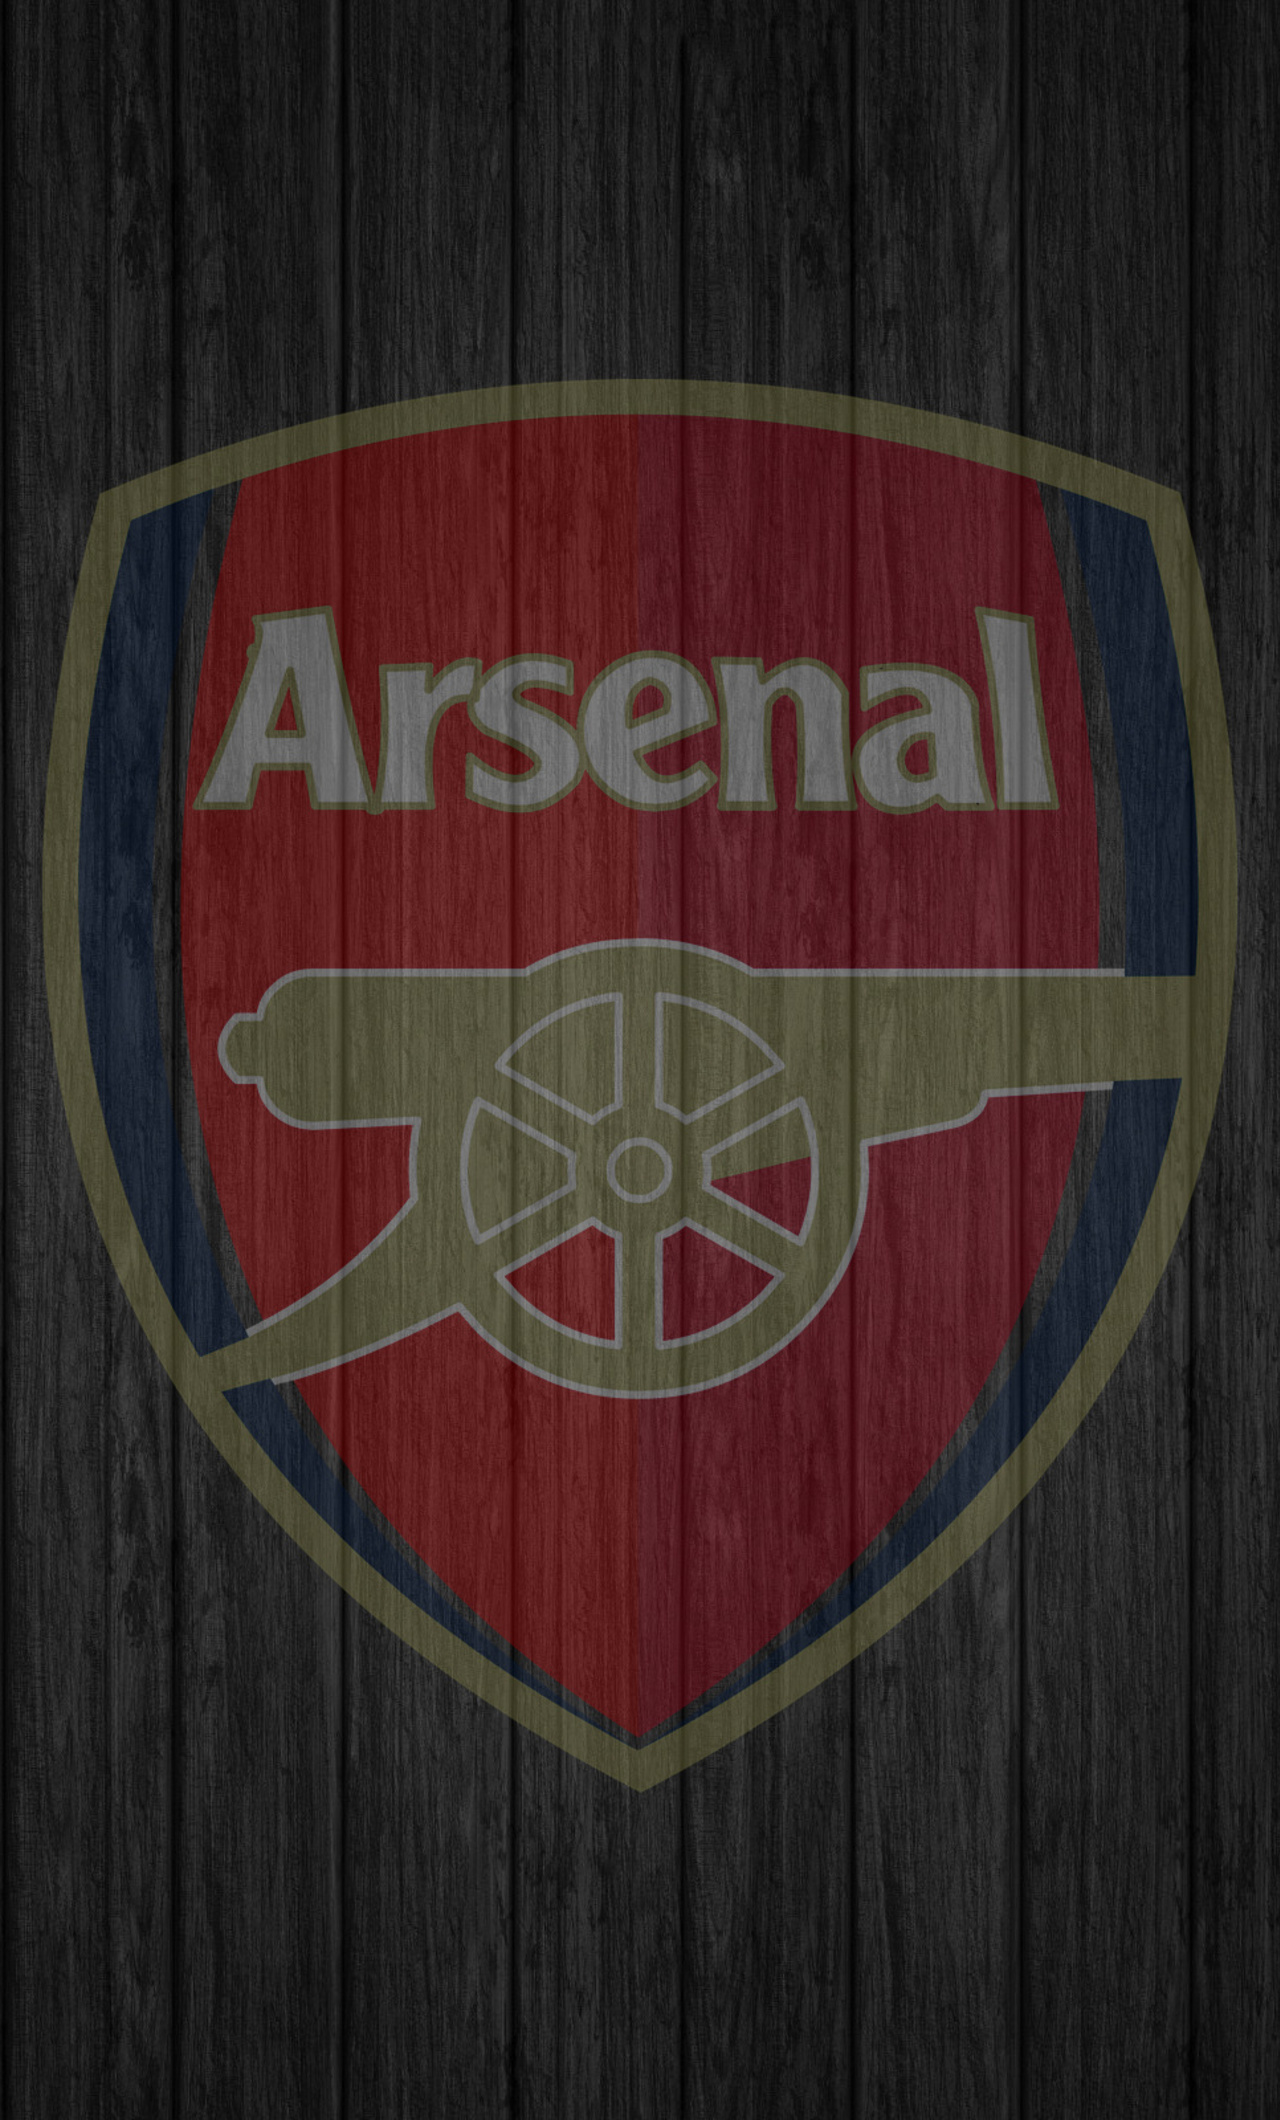 1280x2120 Arsenal Logo Iphone 6 Hd 4k Wallpapers Images